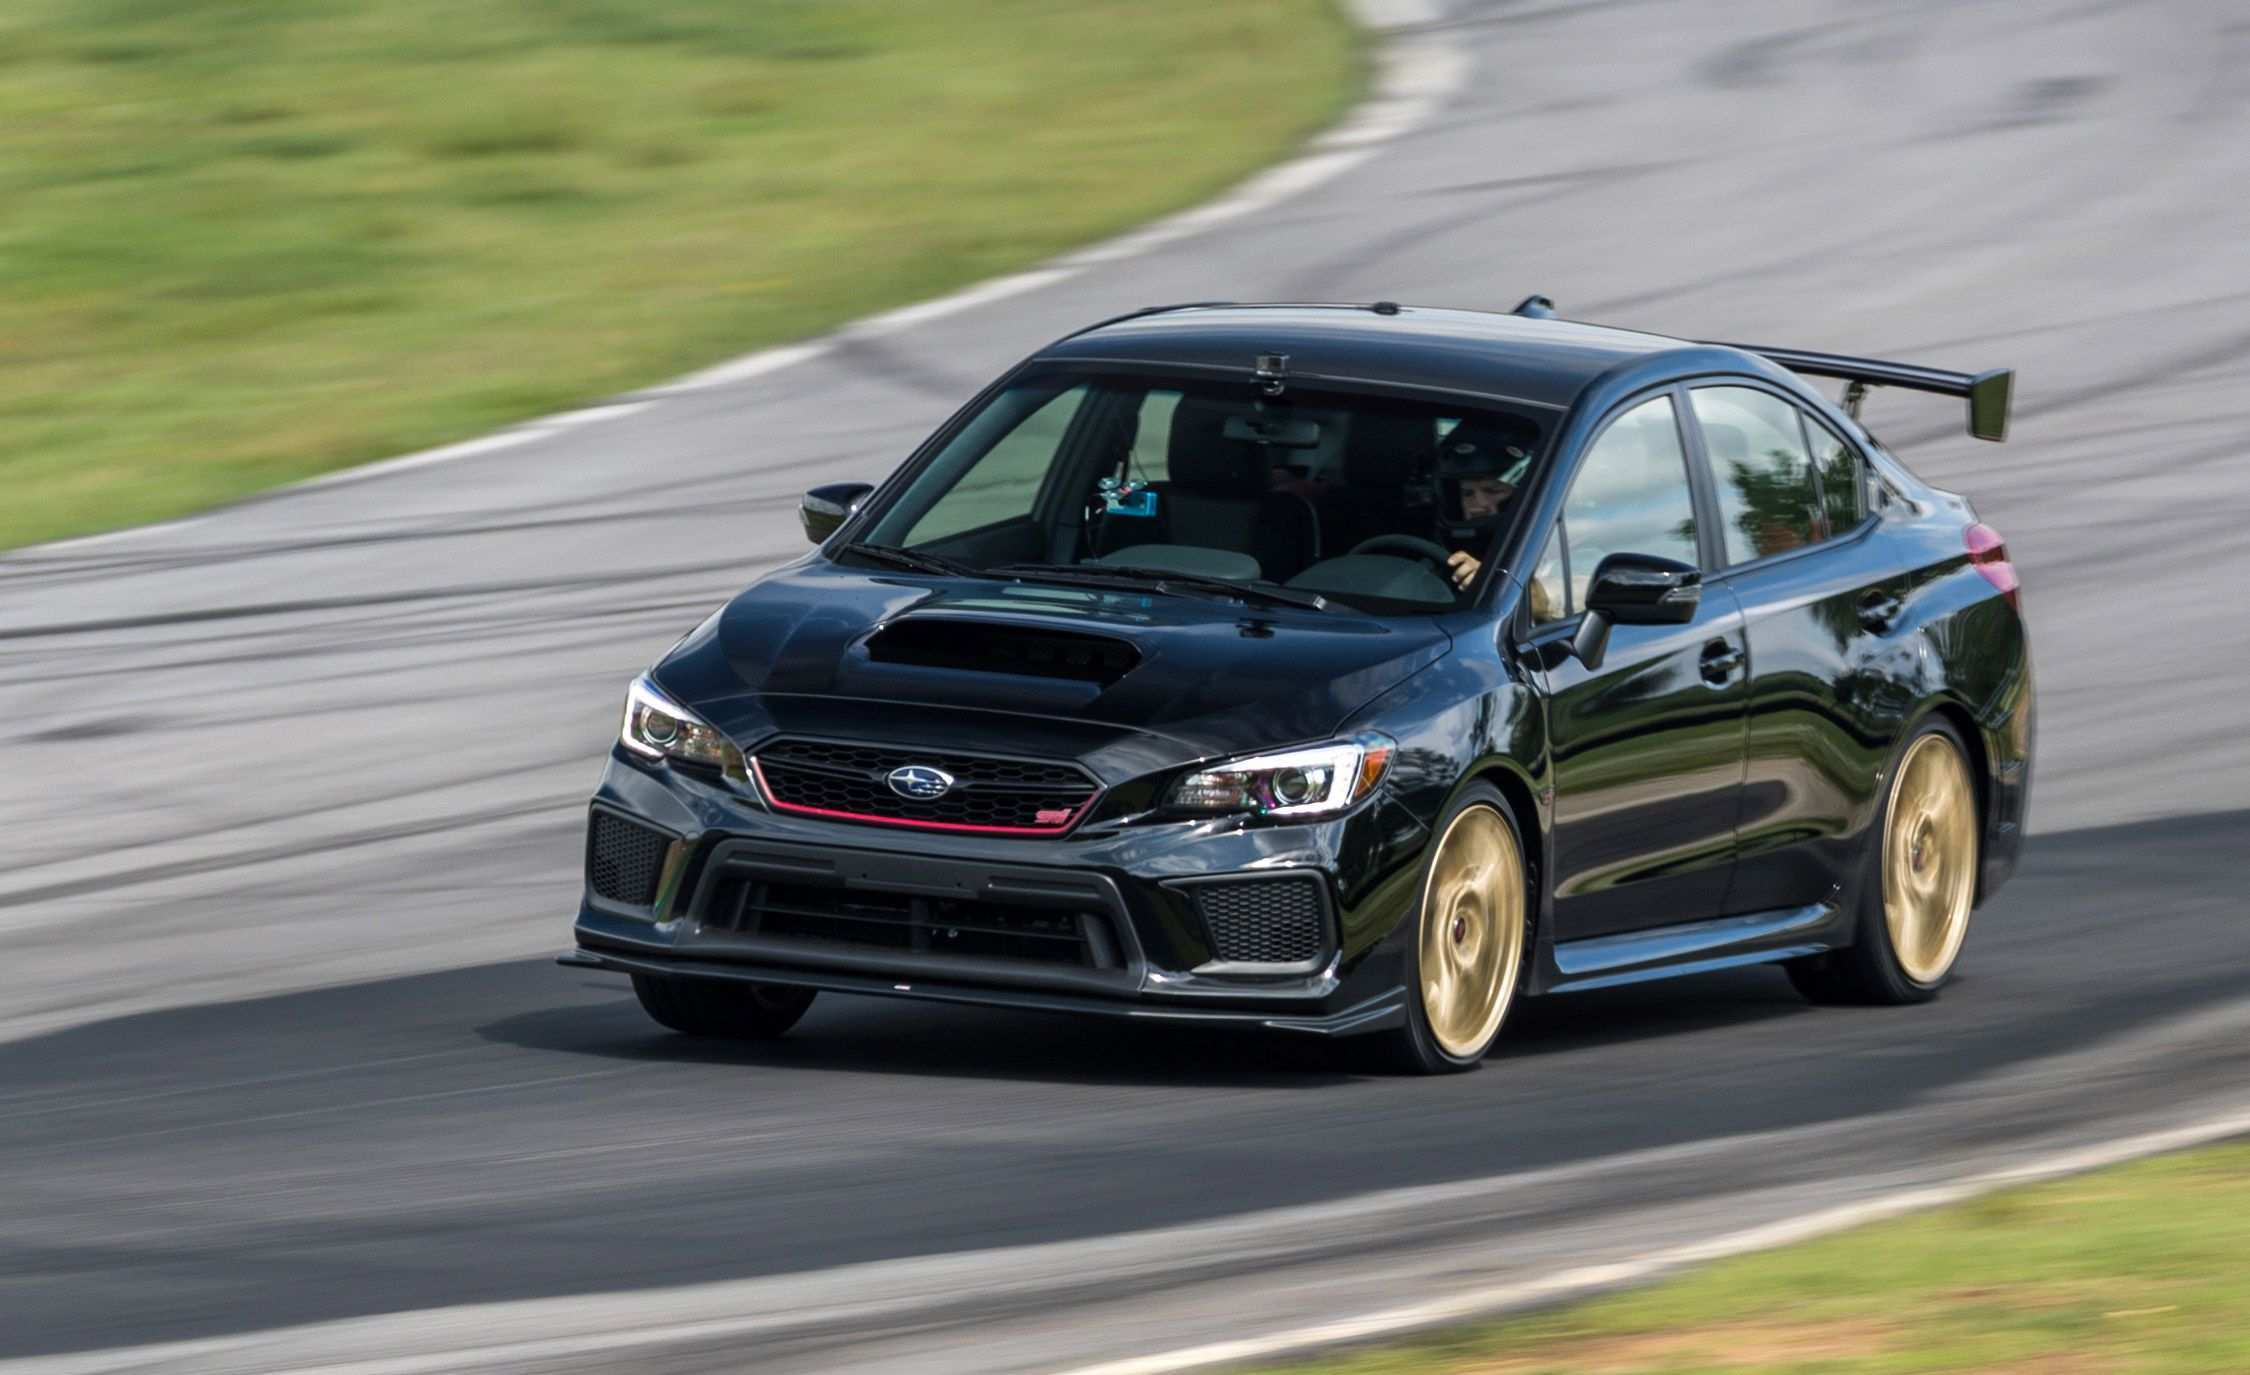 87 Best Review New 2019 Subaru Wrx Sti 0 60 Performance And New Engine History by New 2019 Subaru Wrx Sti 0 60 Performance And New Engine